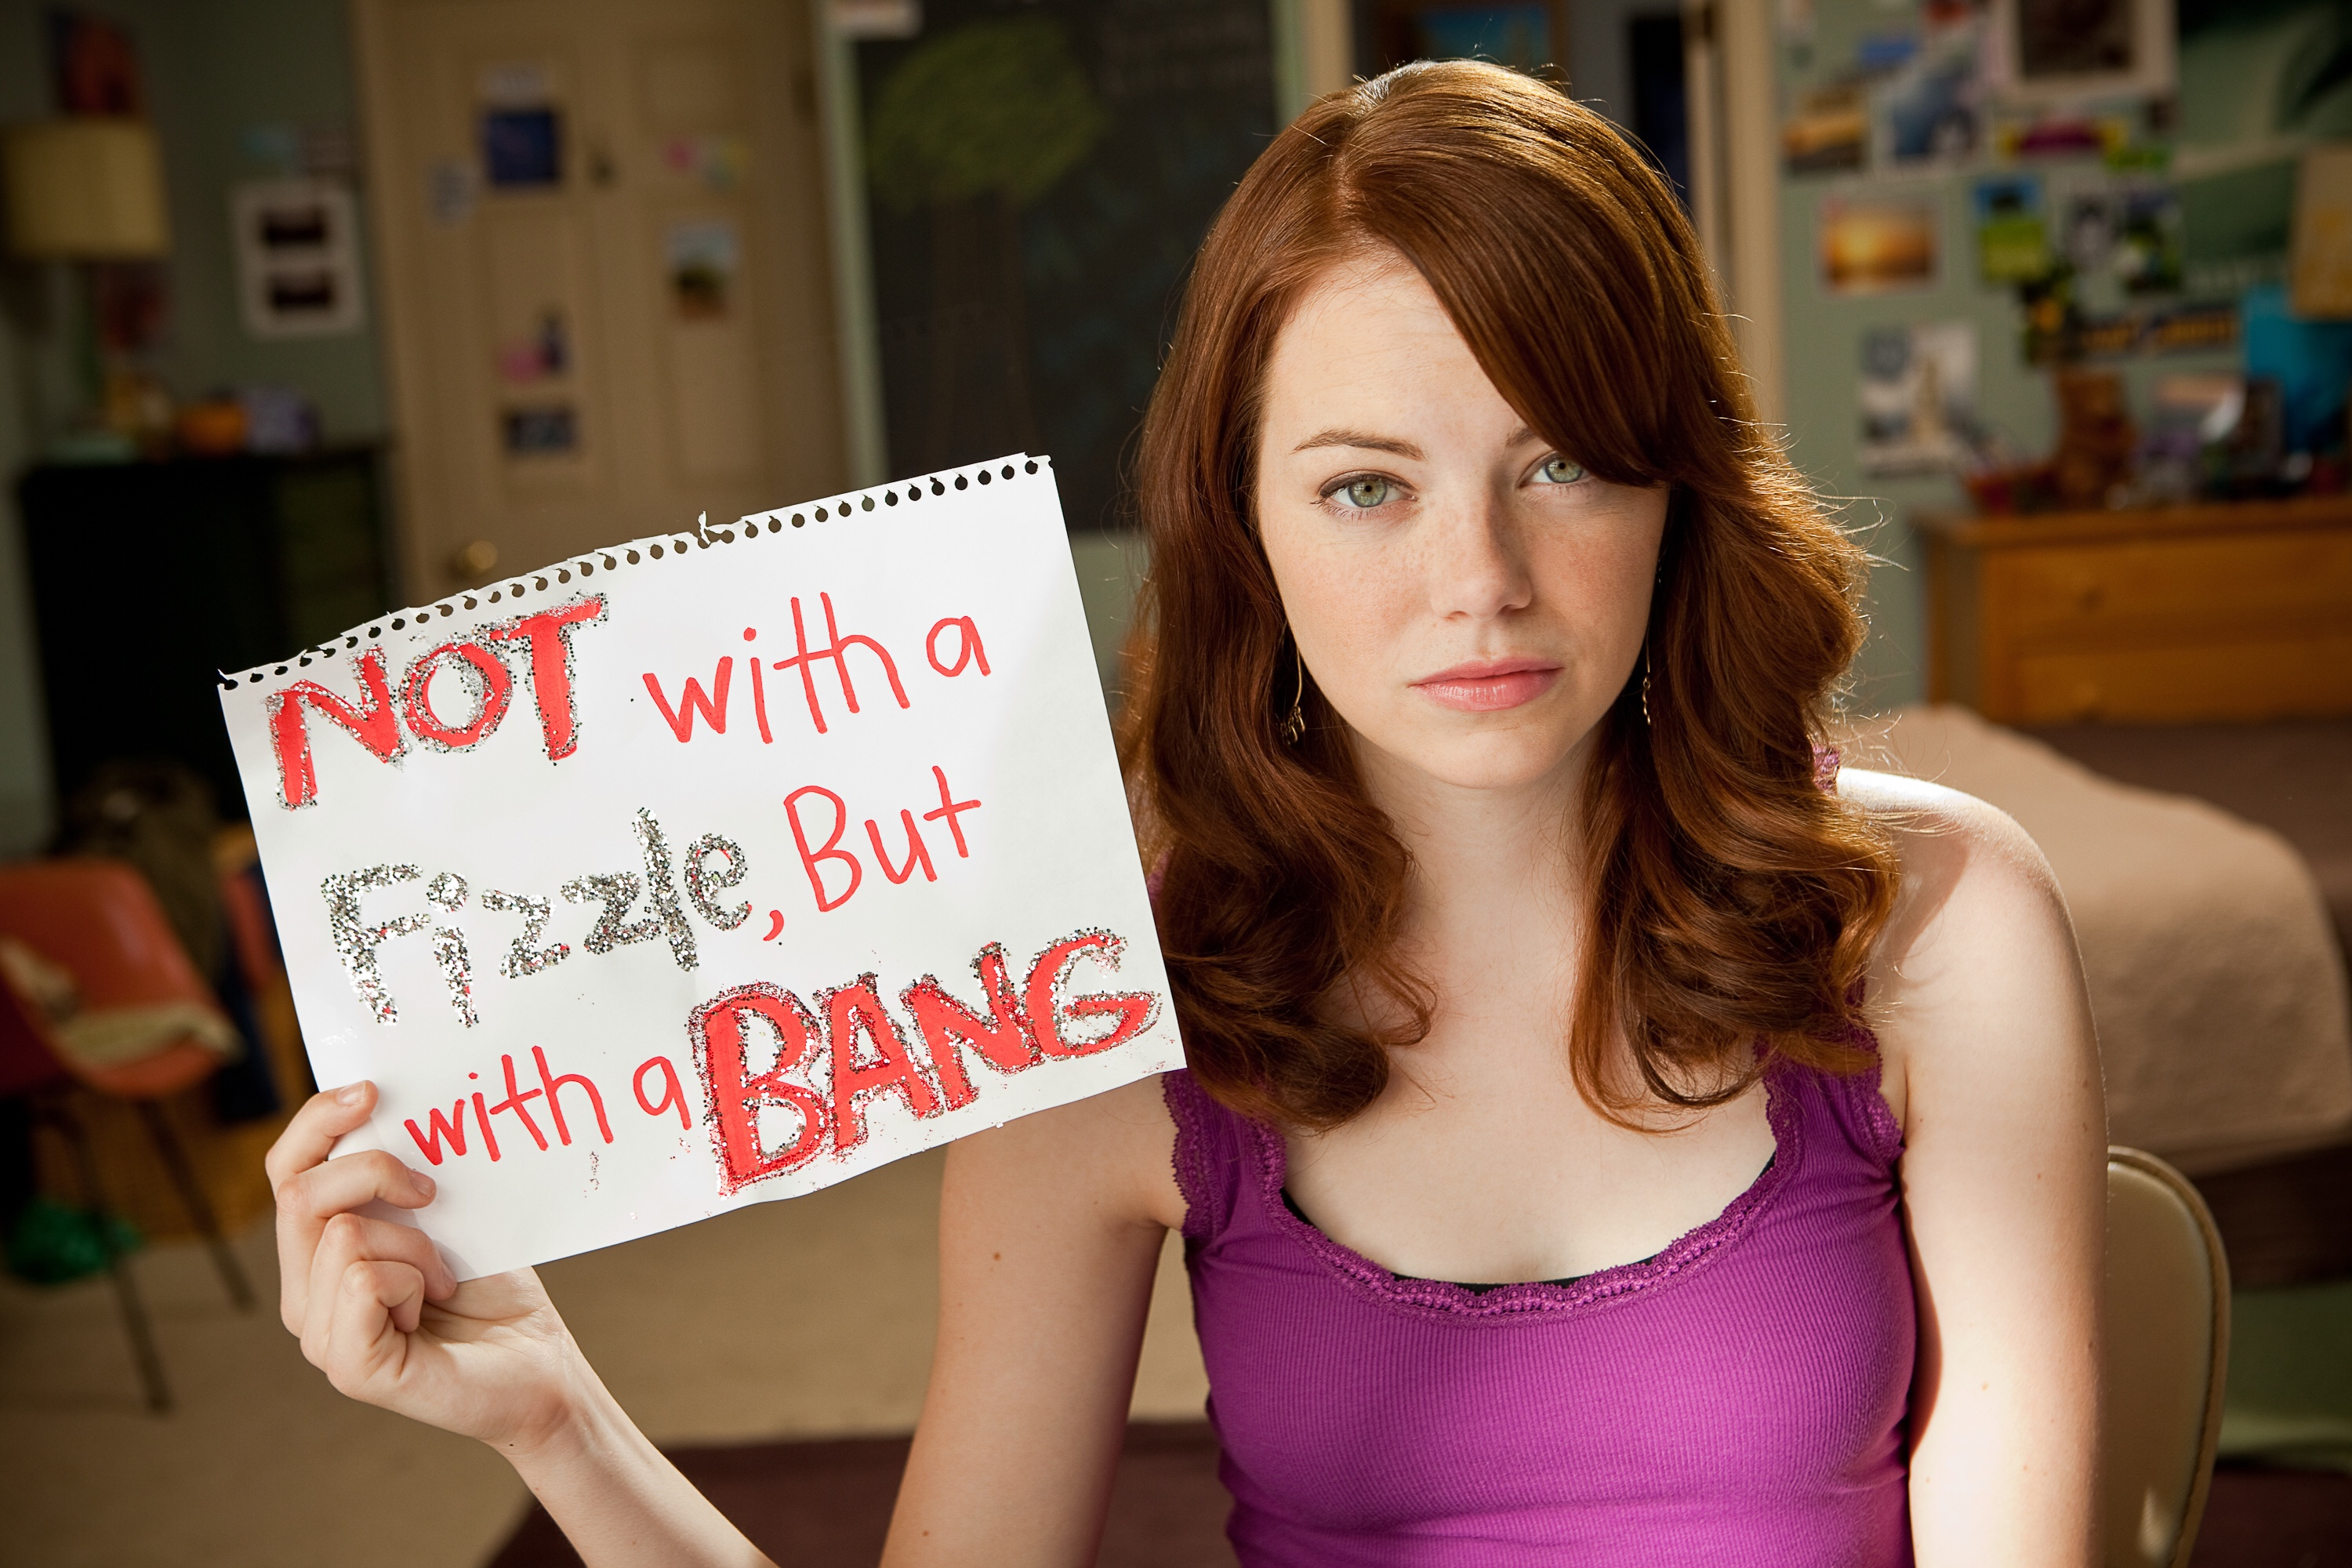 Stone facing the camera, holding a sign that says 'not with a fizzle but with a bang'